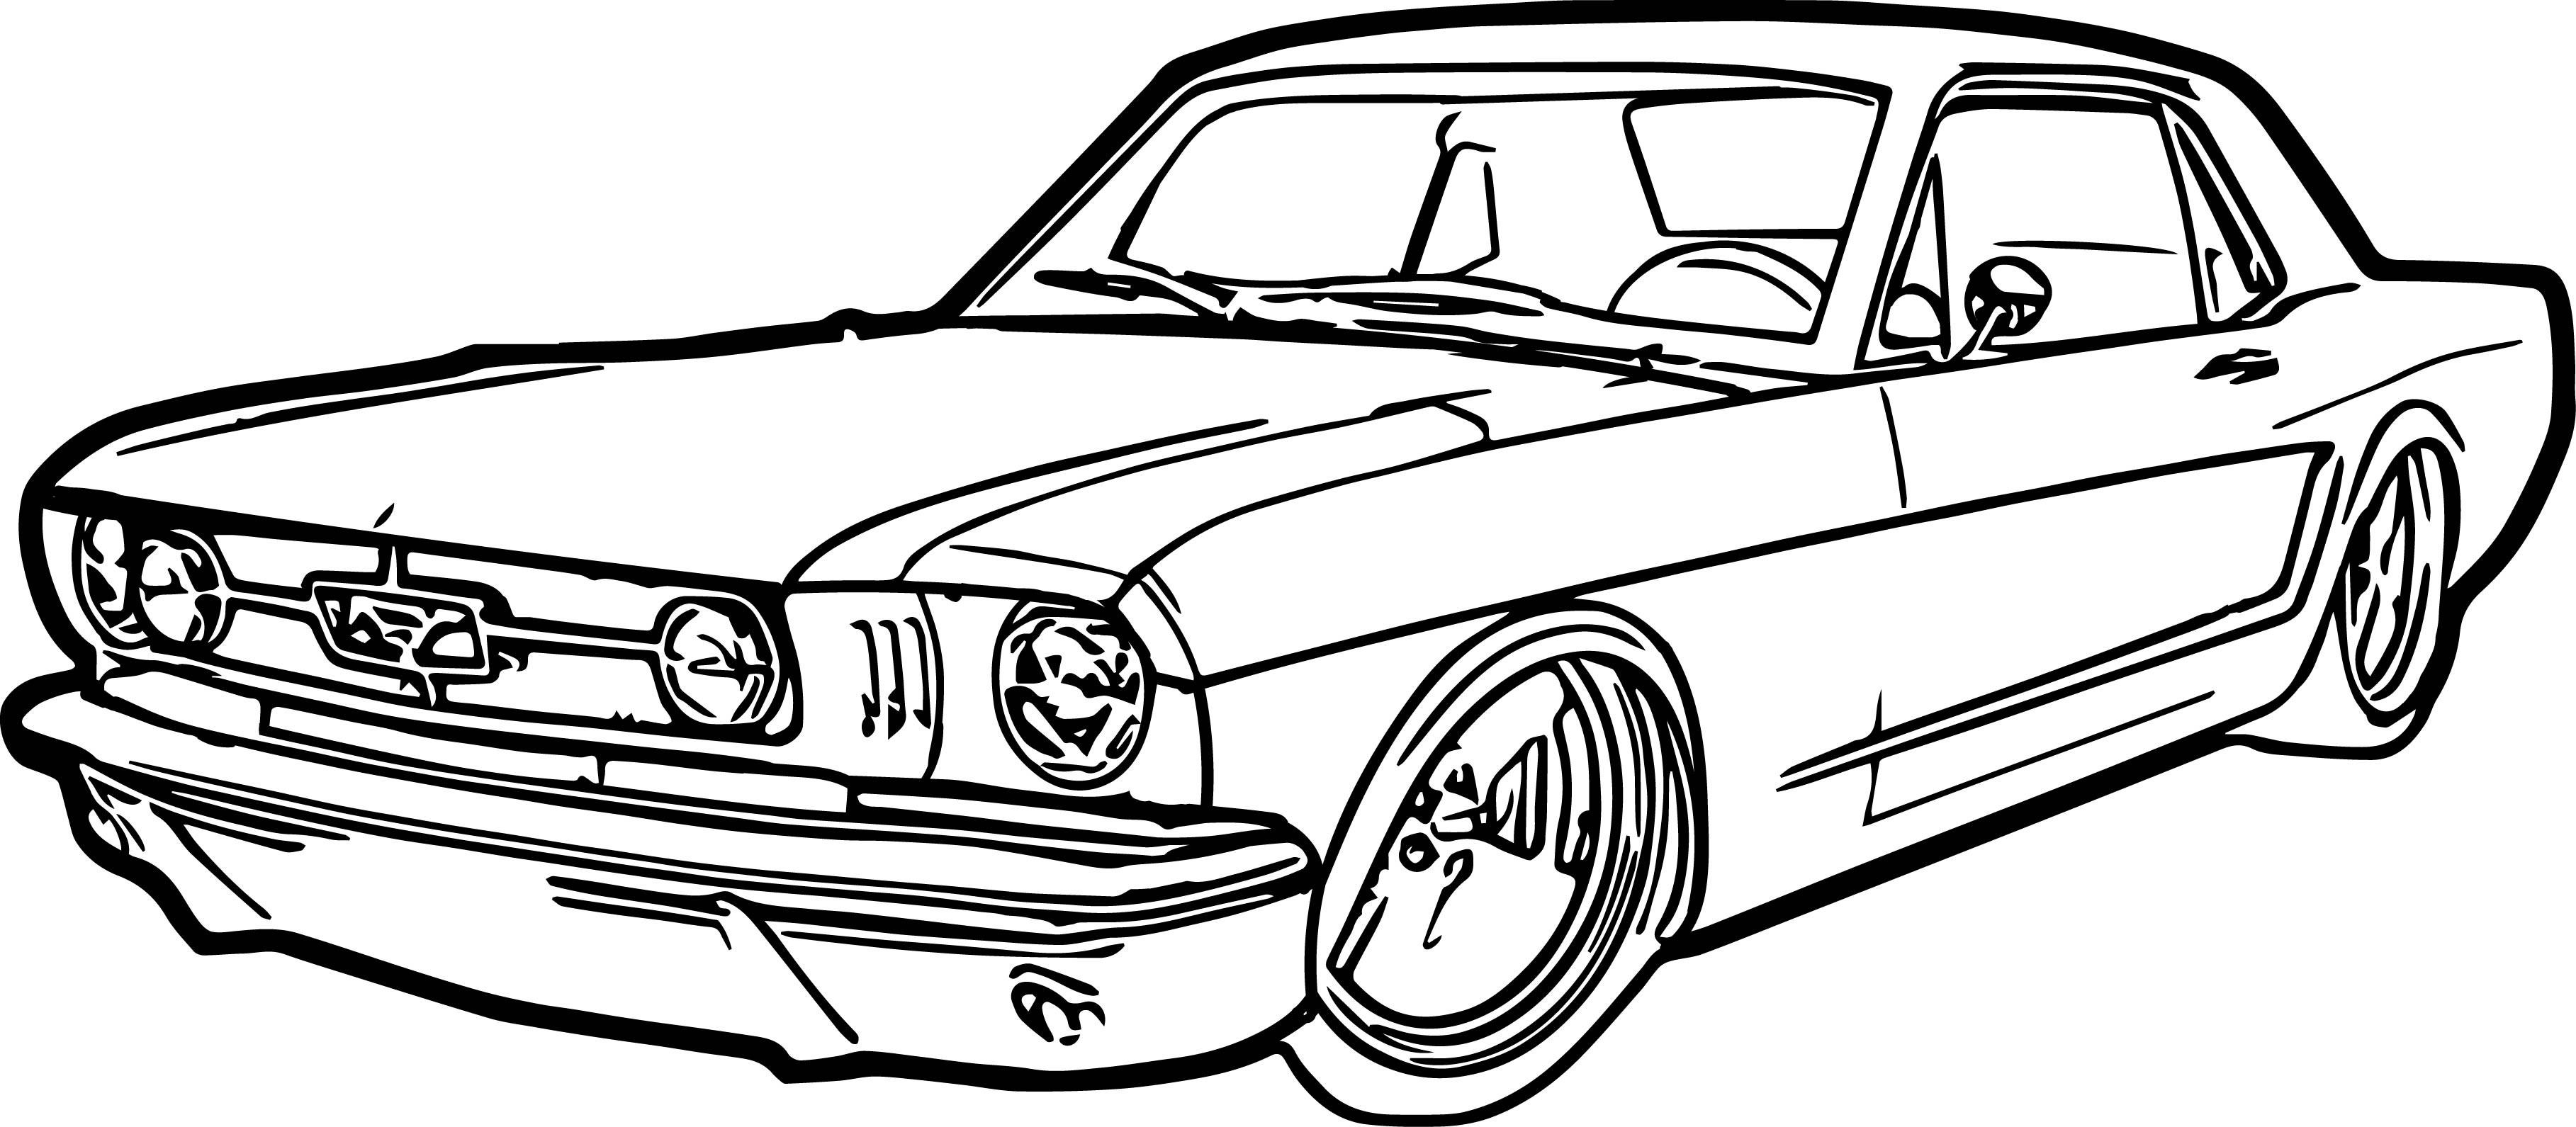 3635x1591 Super Car Ford Mustang Coloring Page Inspirational Mustang